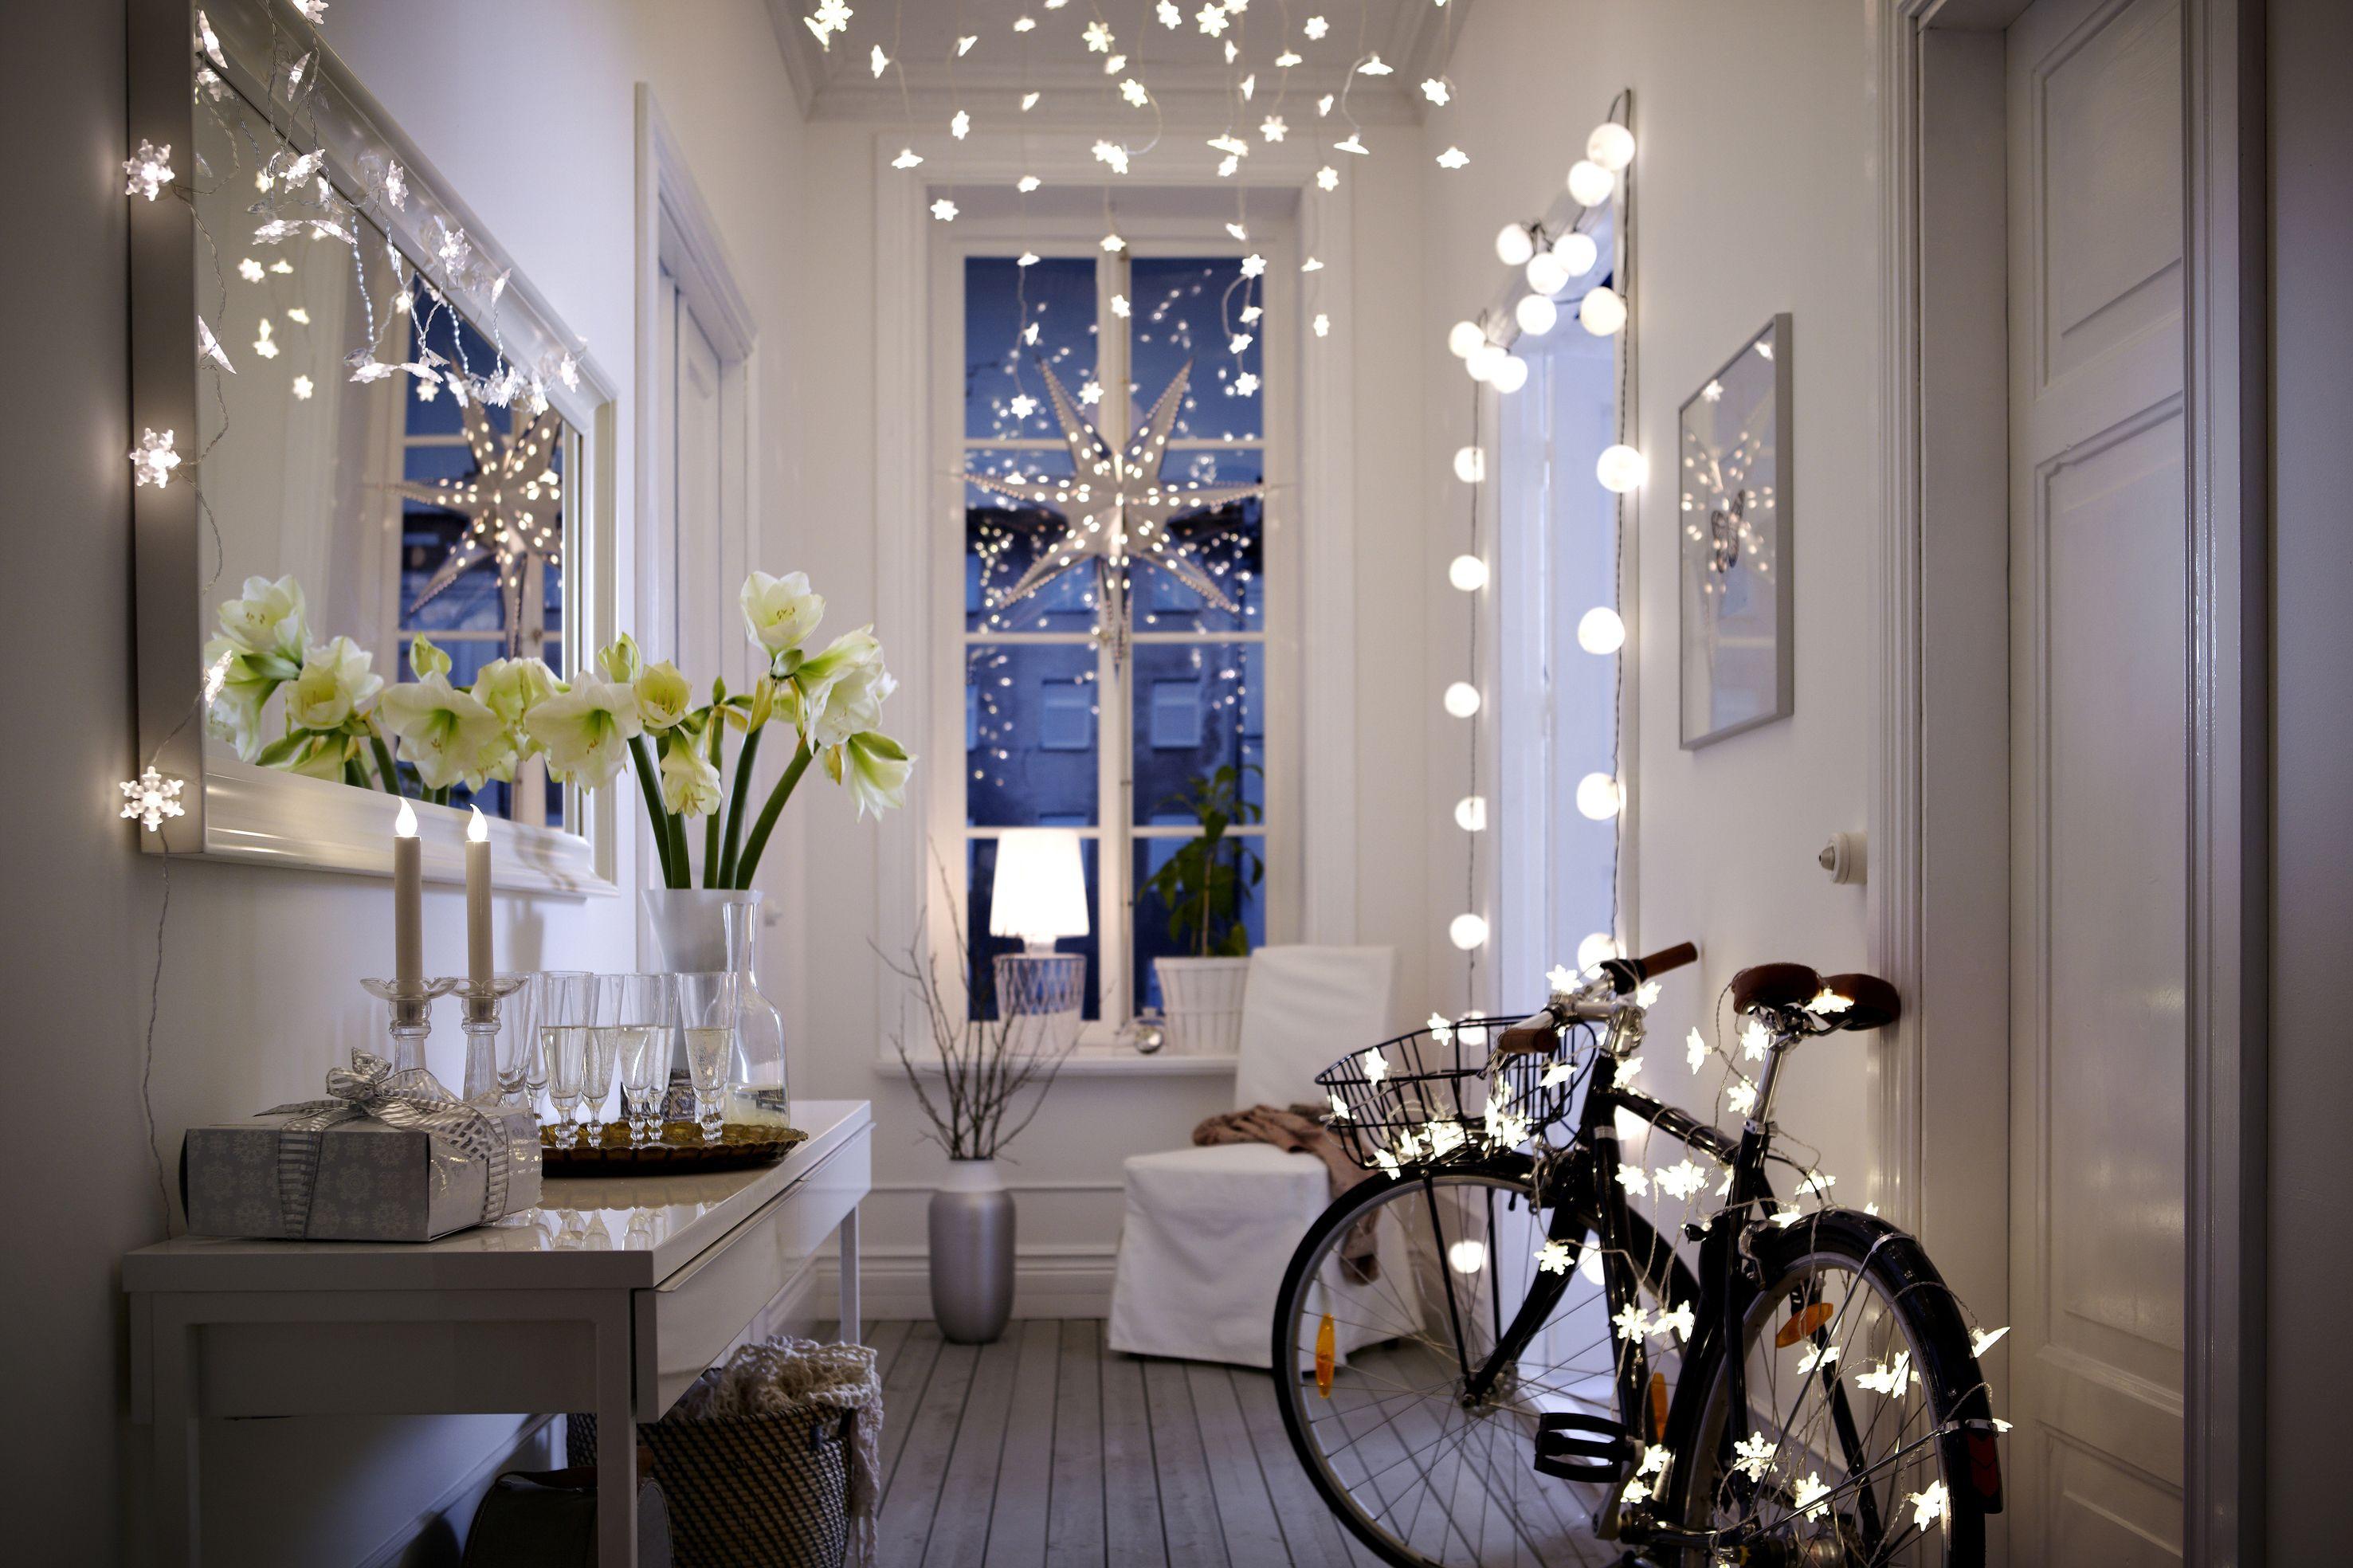 Ikea String Lights Xmas Lighting With Ikea For The Home  Pinterest  Interiors